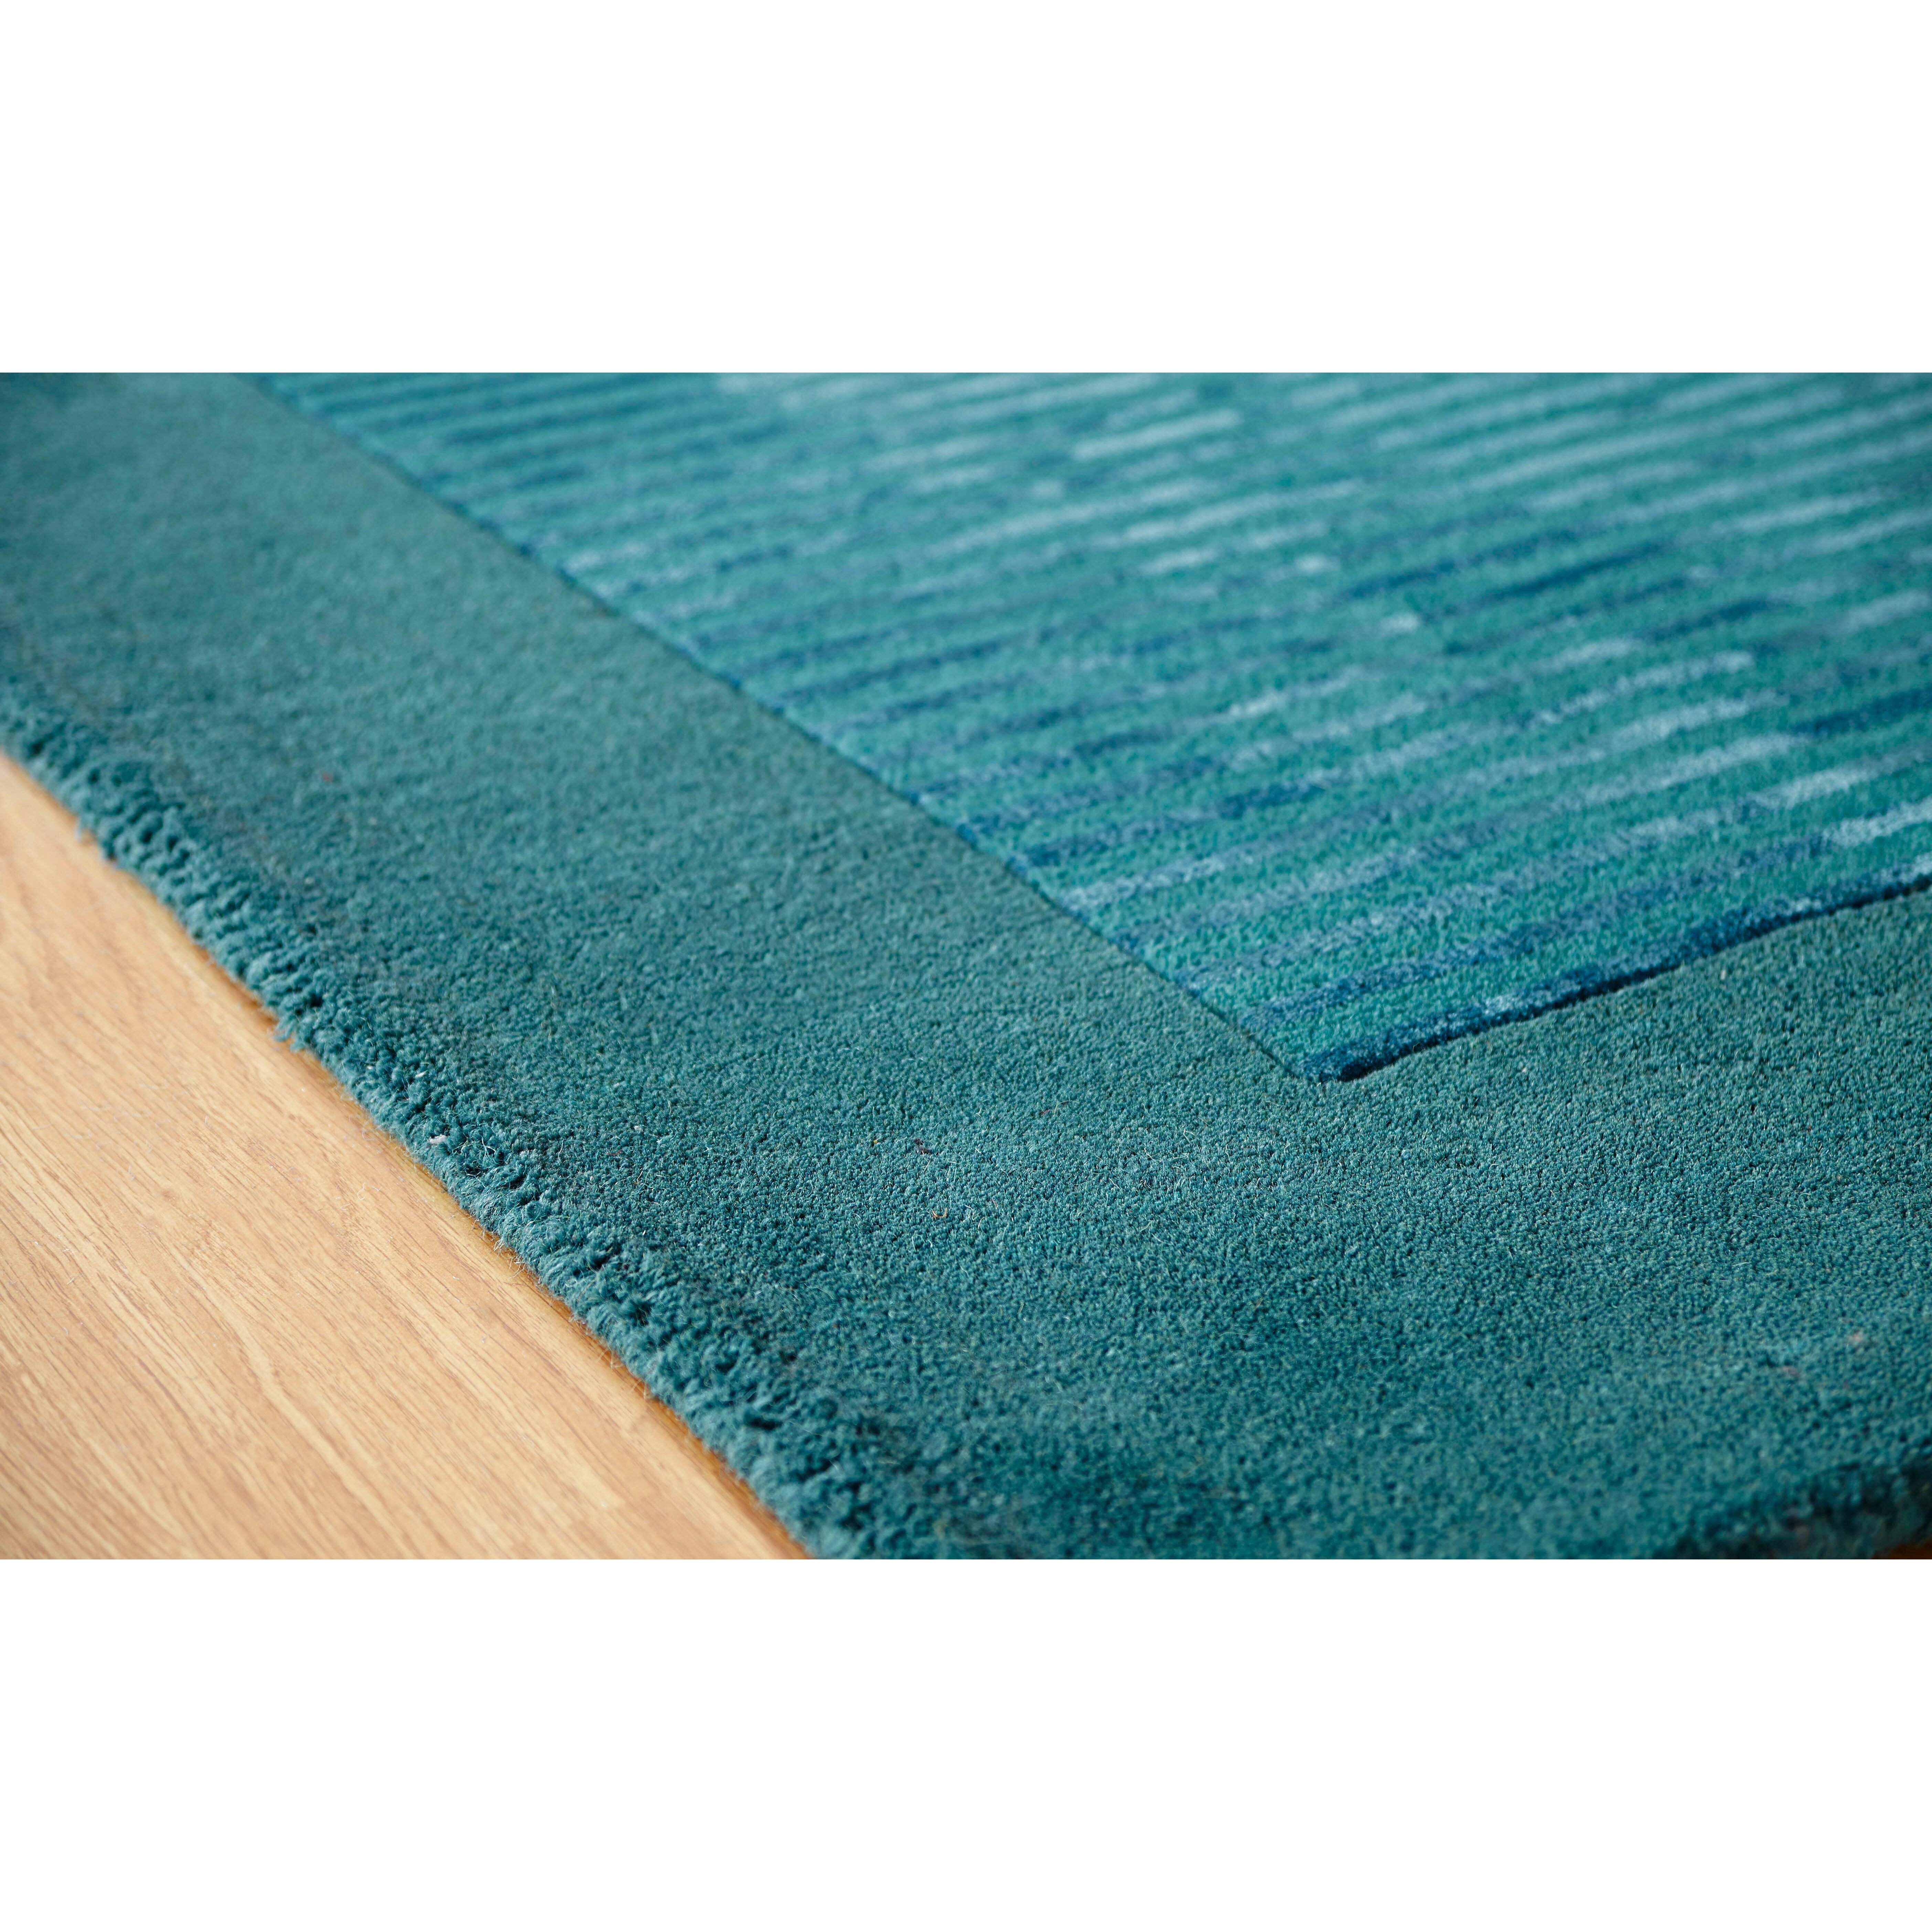 Teal Woven Rag Rug: Brook Lane Rugs Henley Hand-Woven Teal Area Rug & Reviews